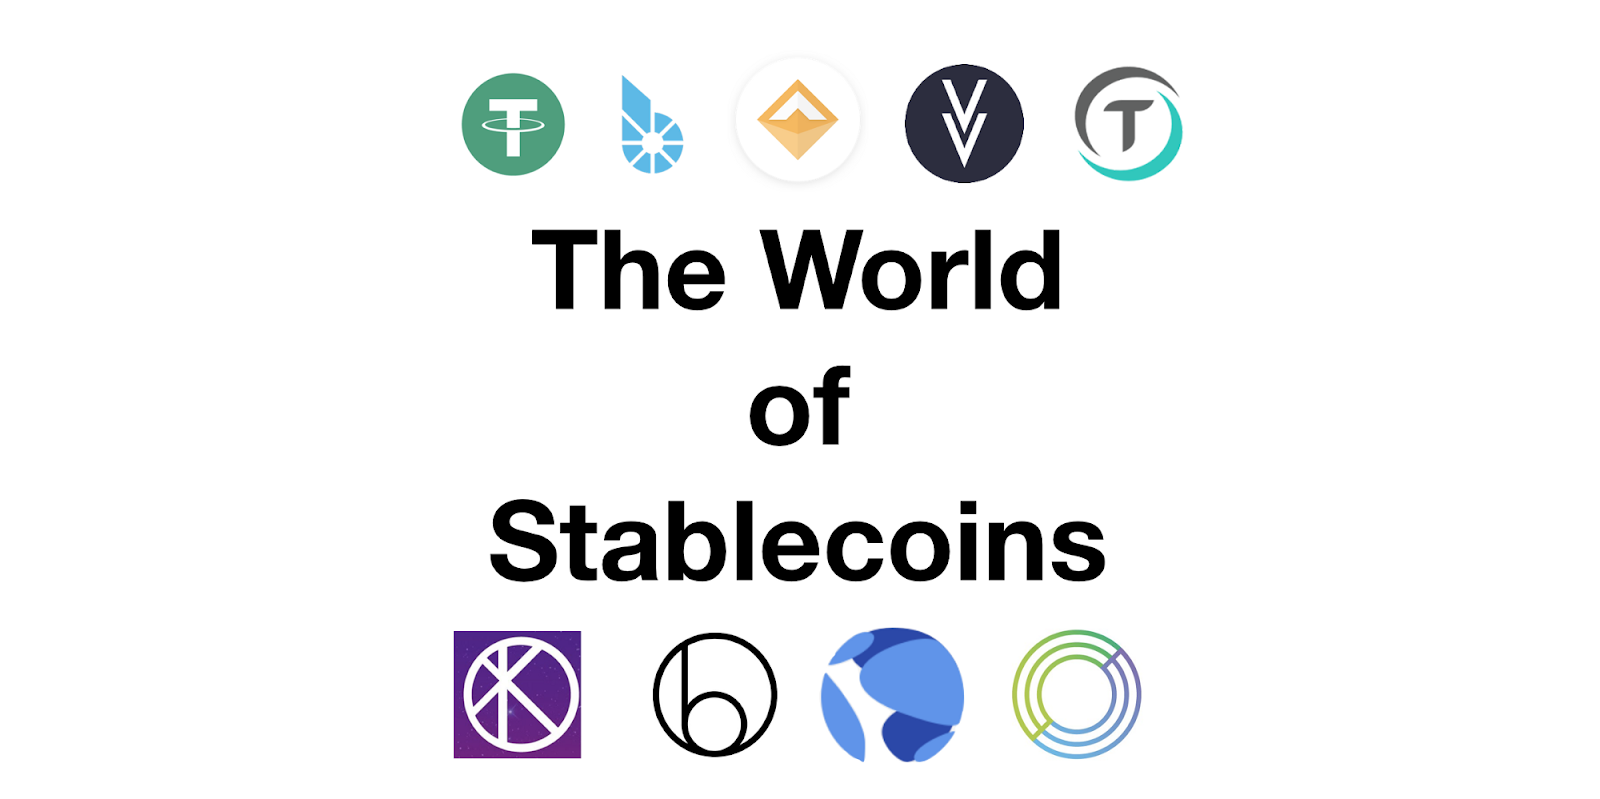 Một số loại Stablecoin